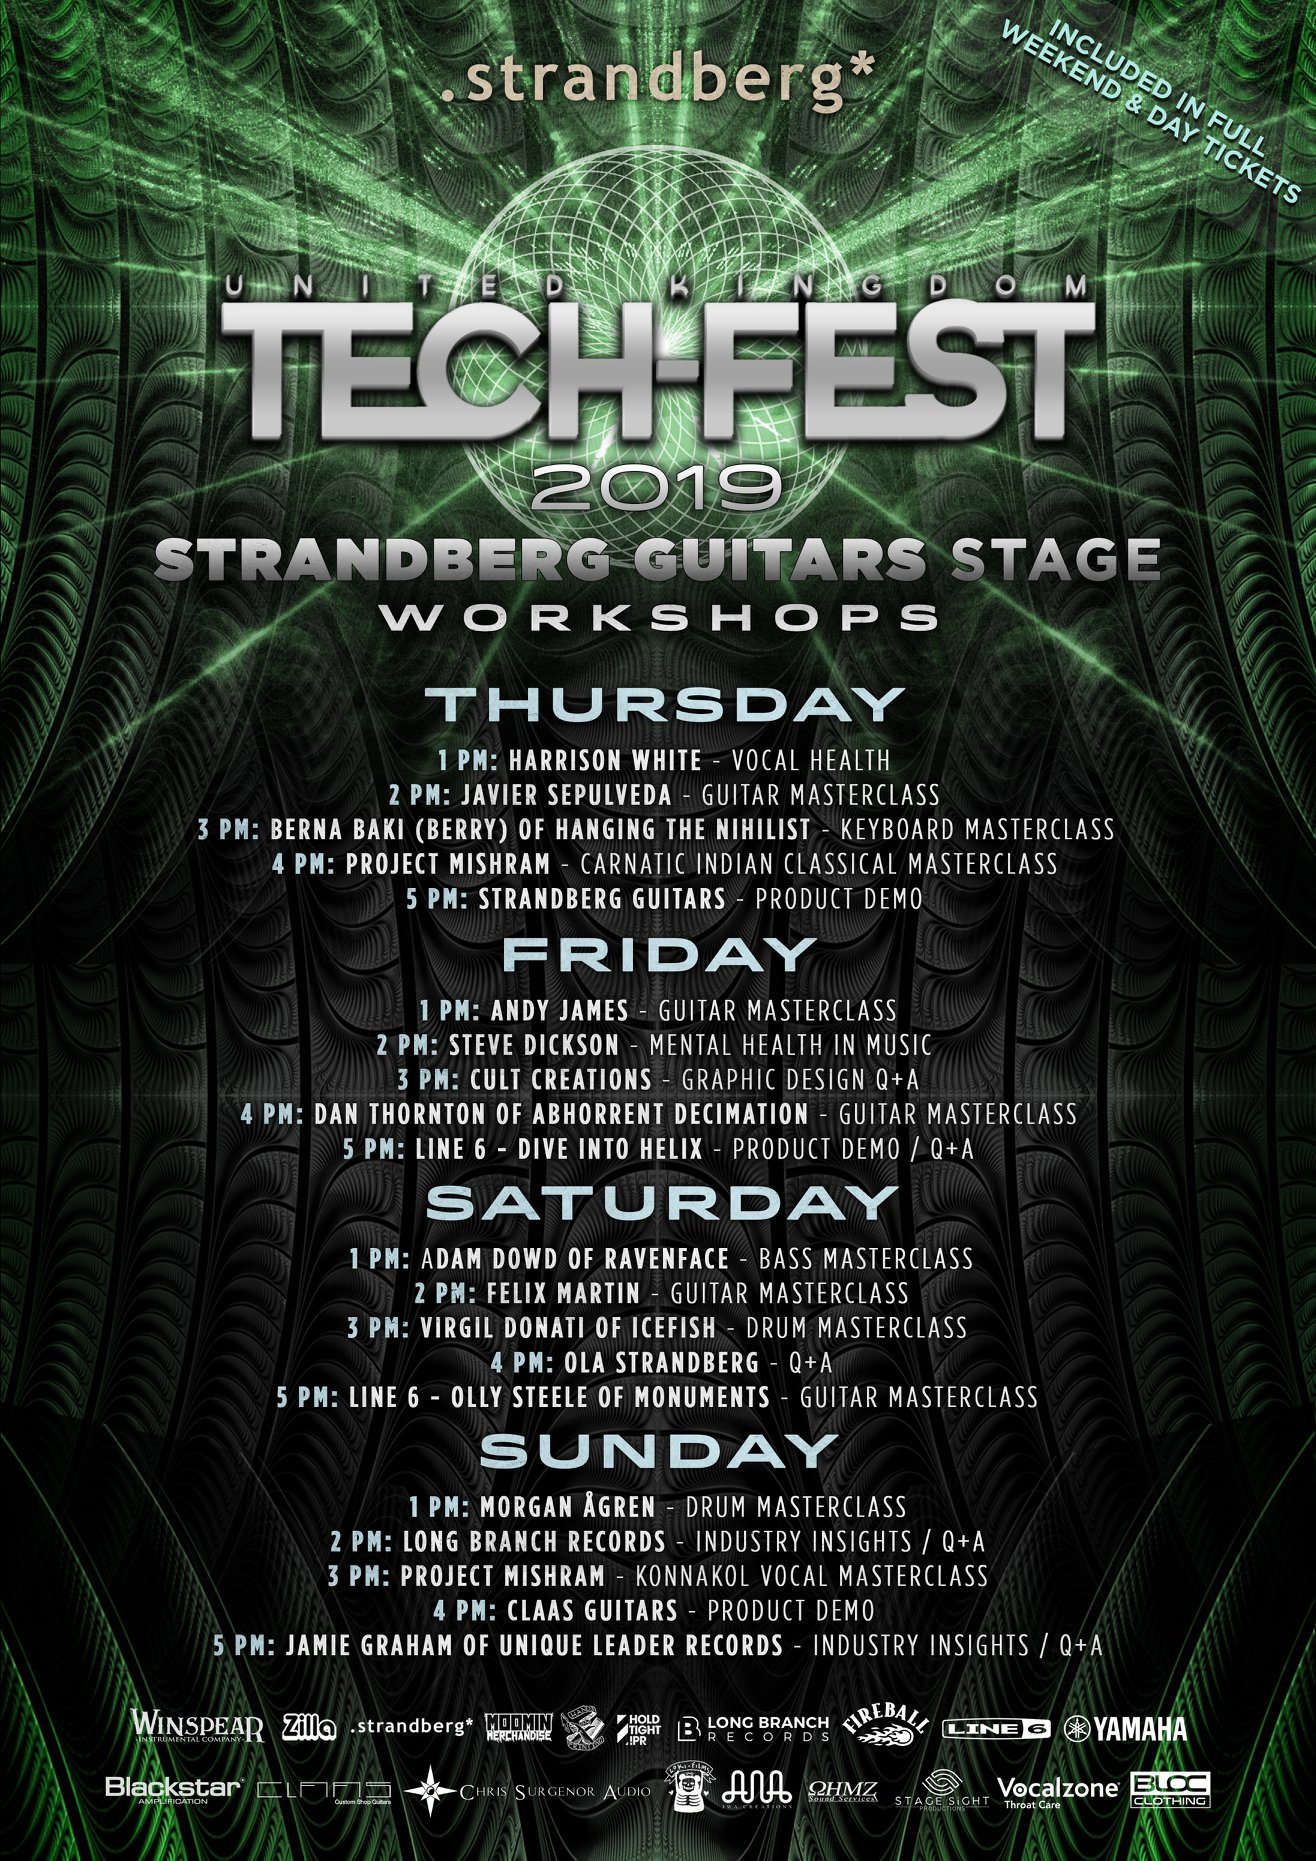 TECH FEST WORKSHOPS 2019 -